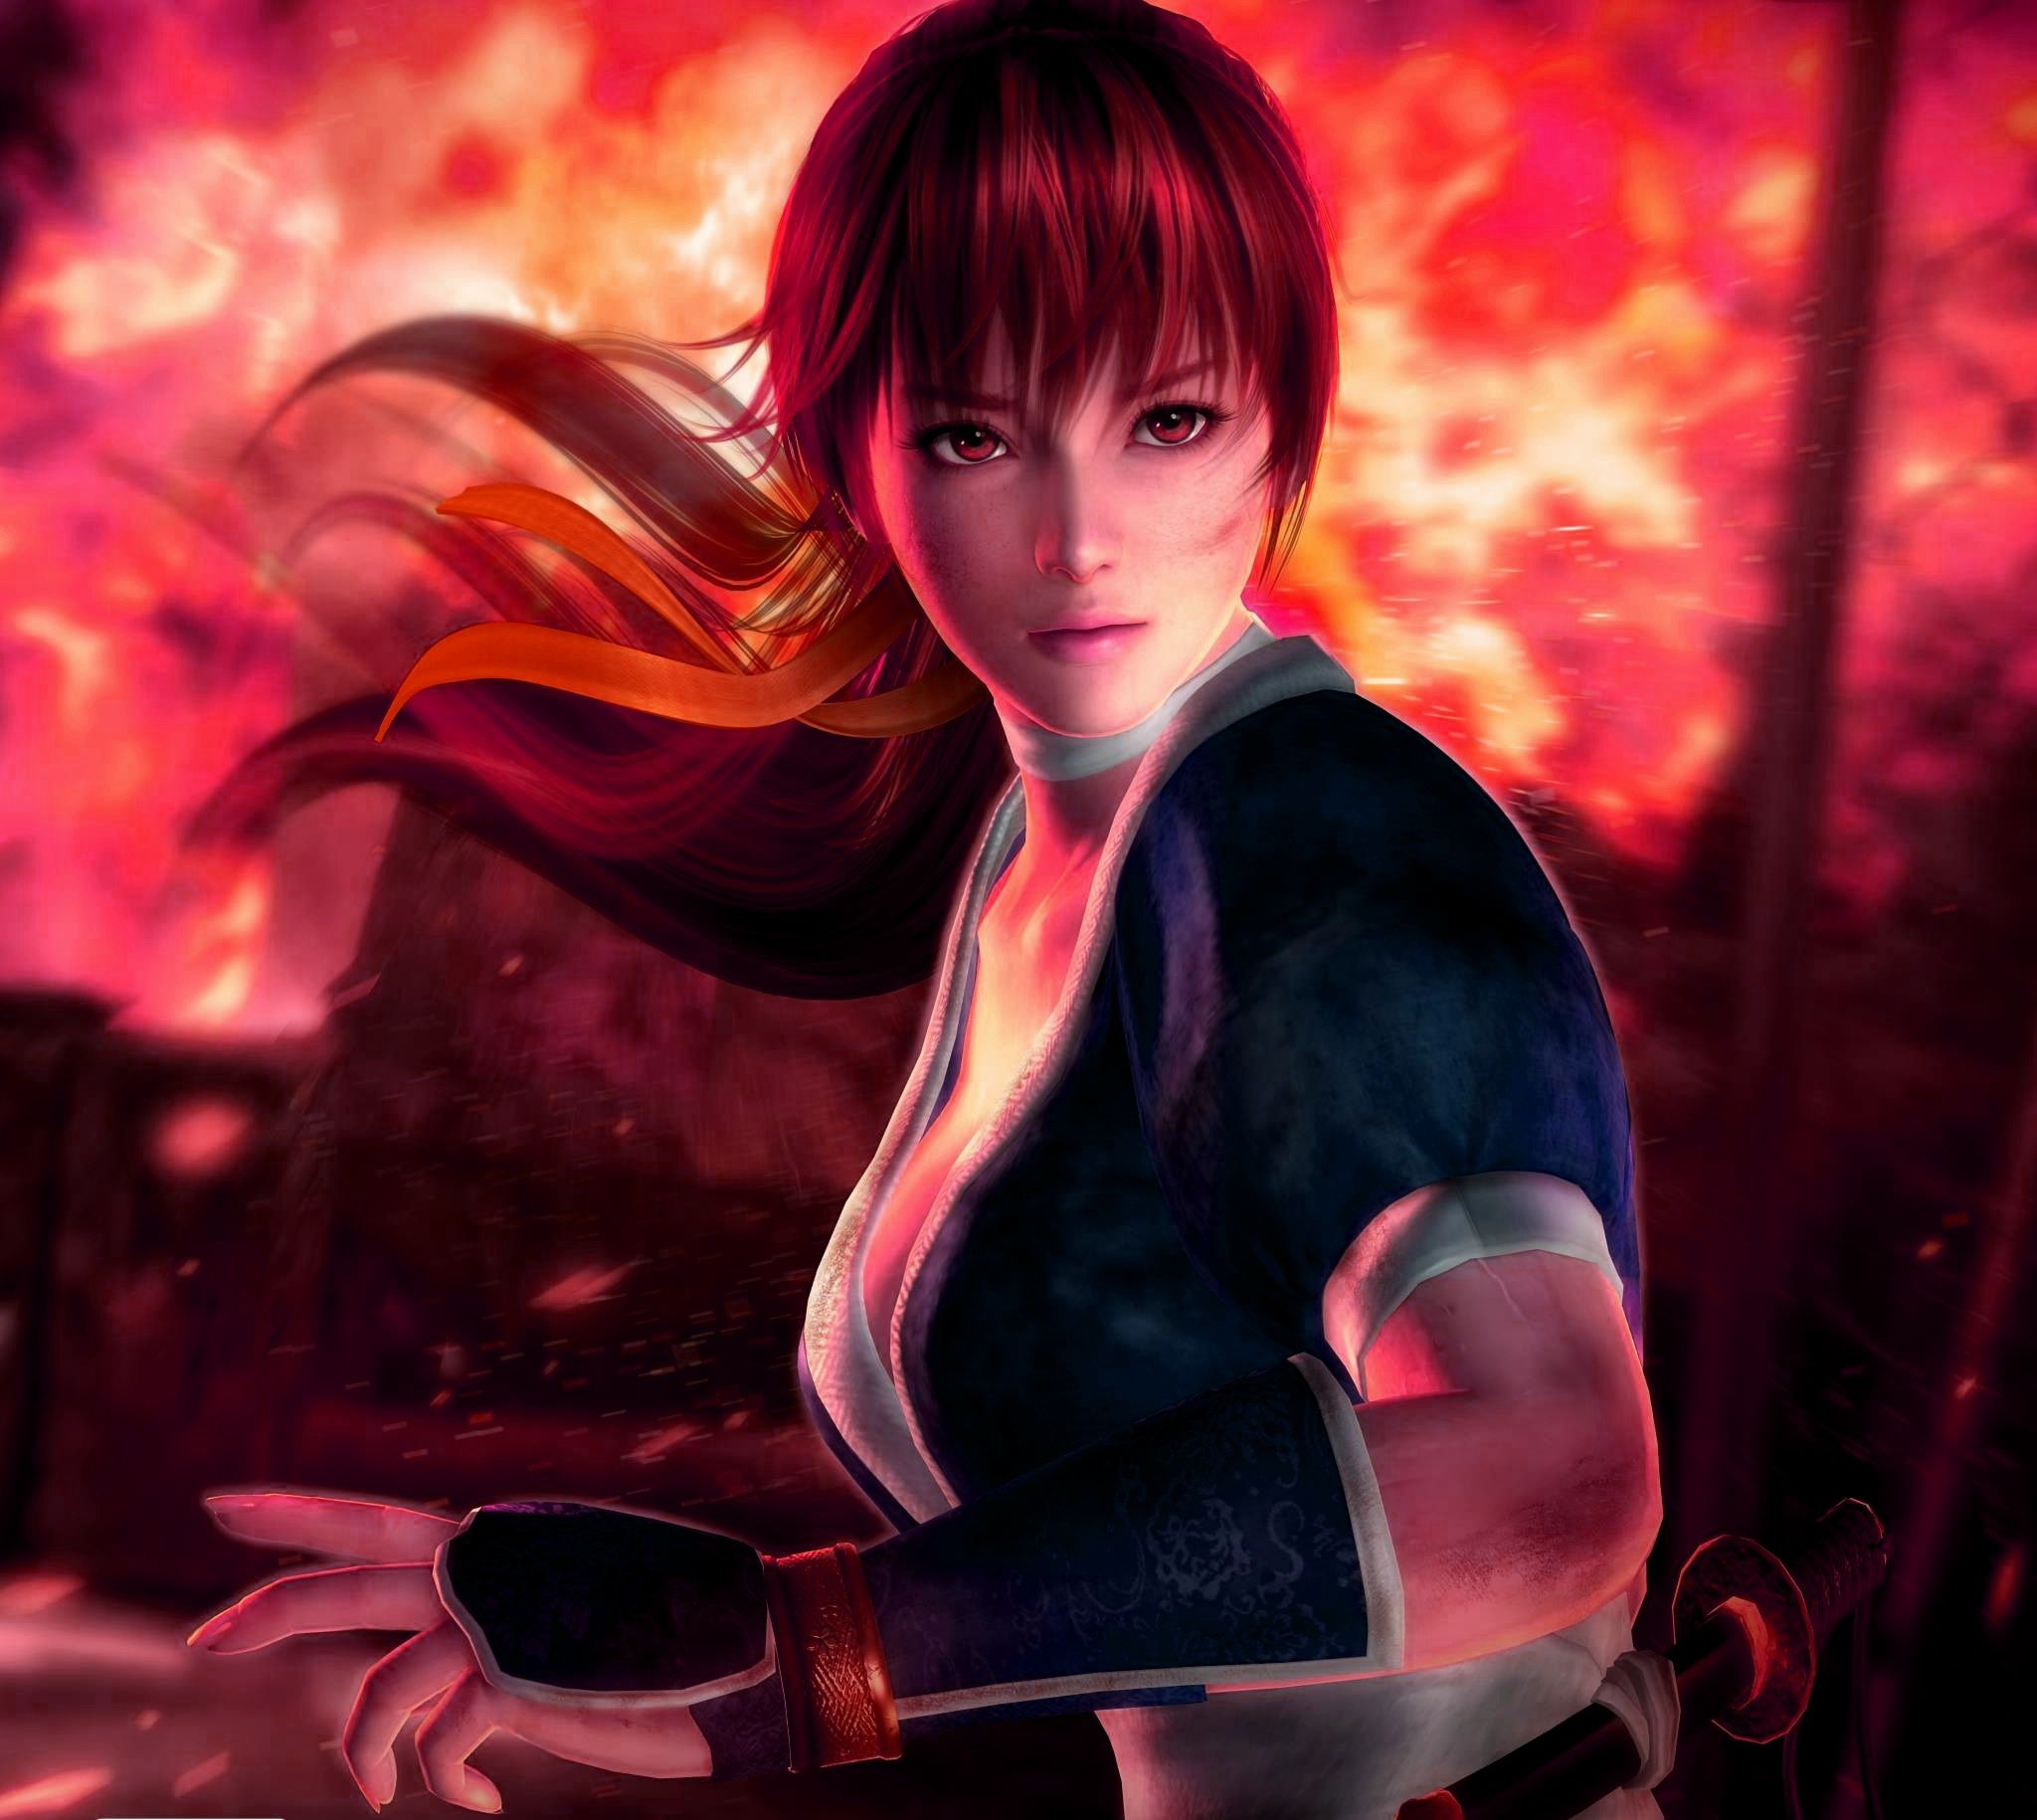 Kasumi Dead or Alive Anime character design, Anime